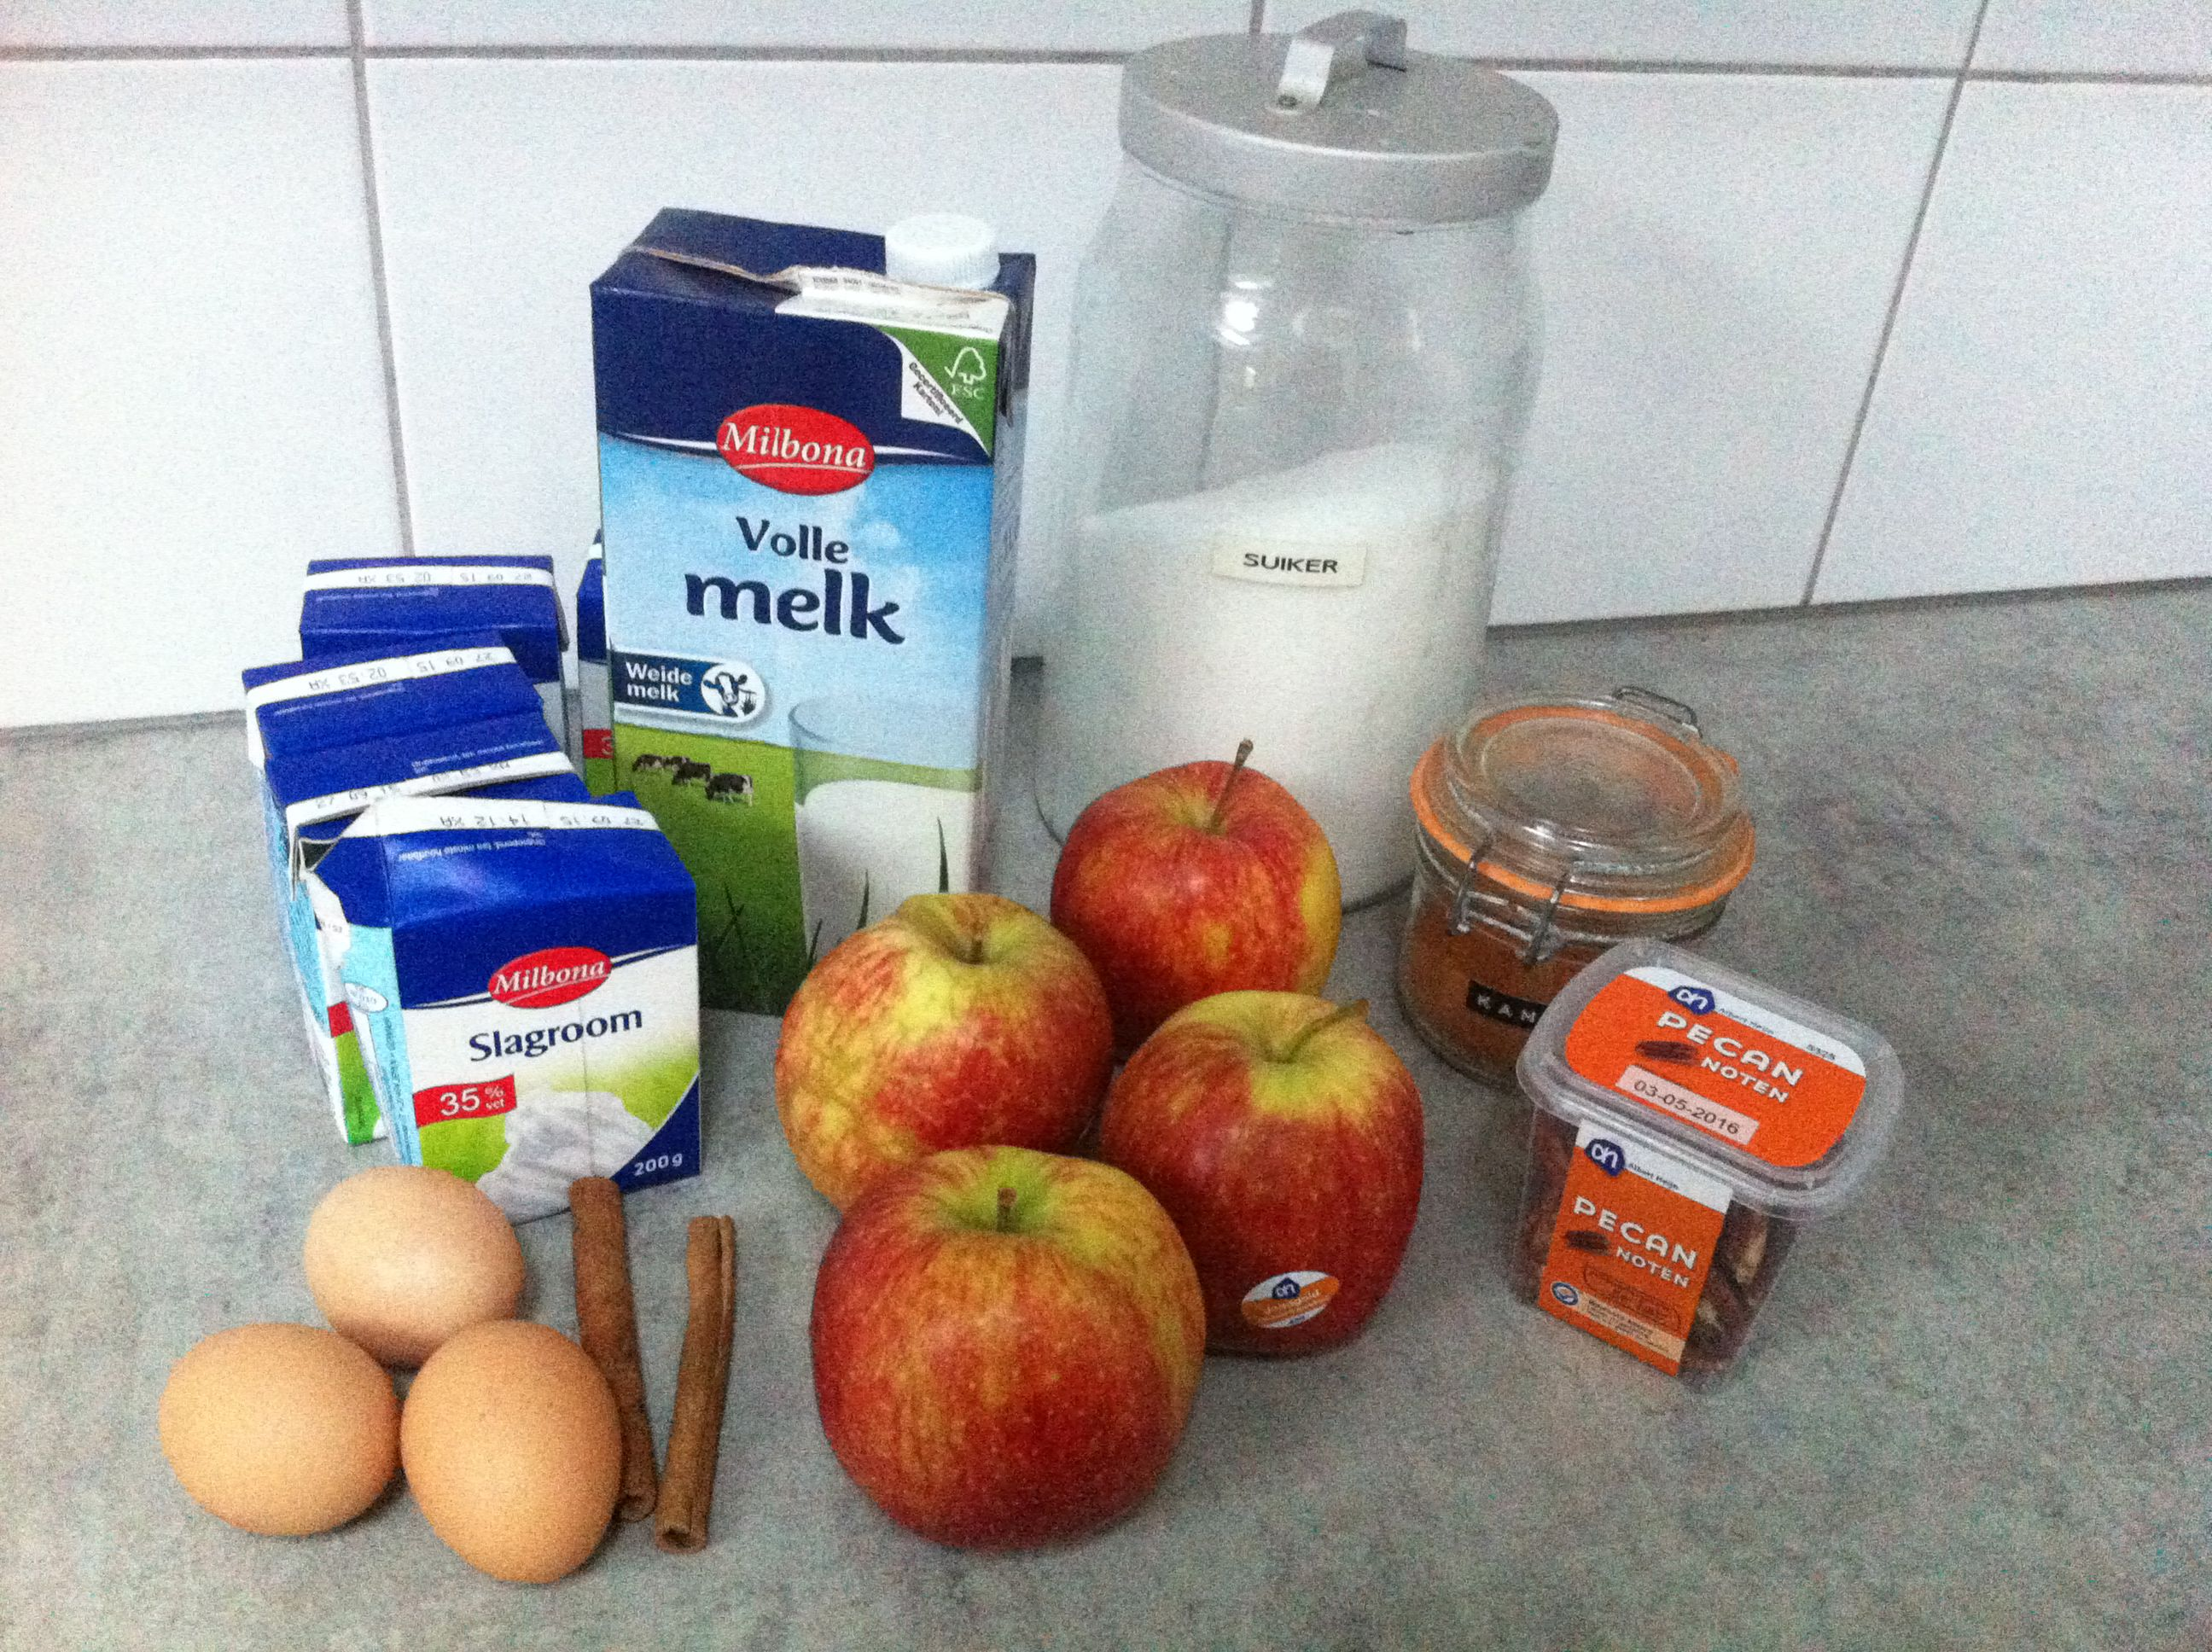 Warm apples and cinnamon ice cream ingredients - Warm apples and cinnamon ice cream